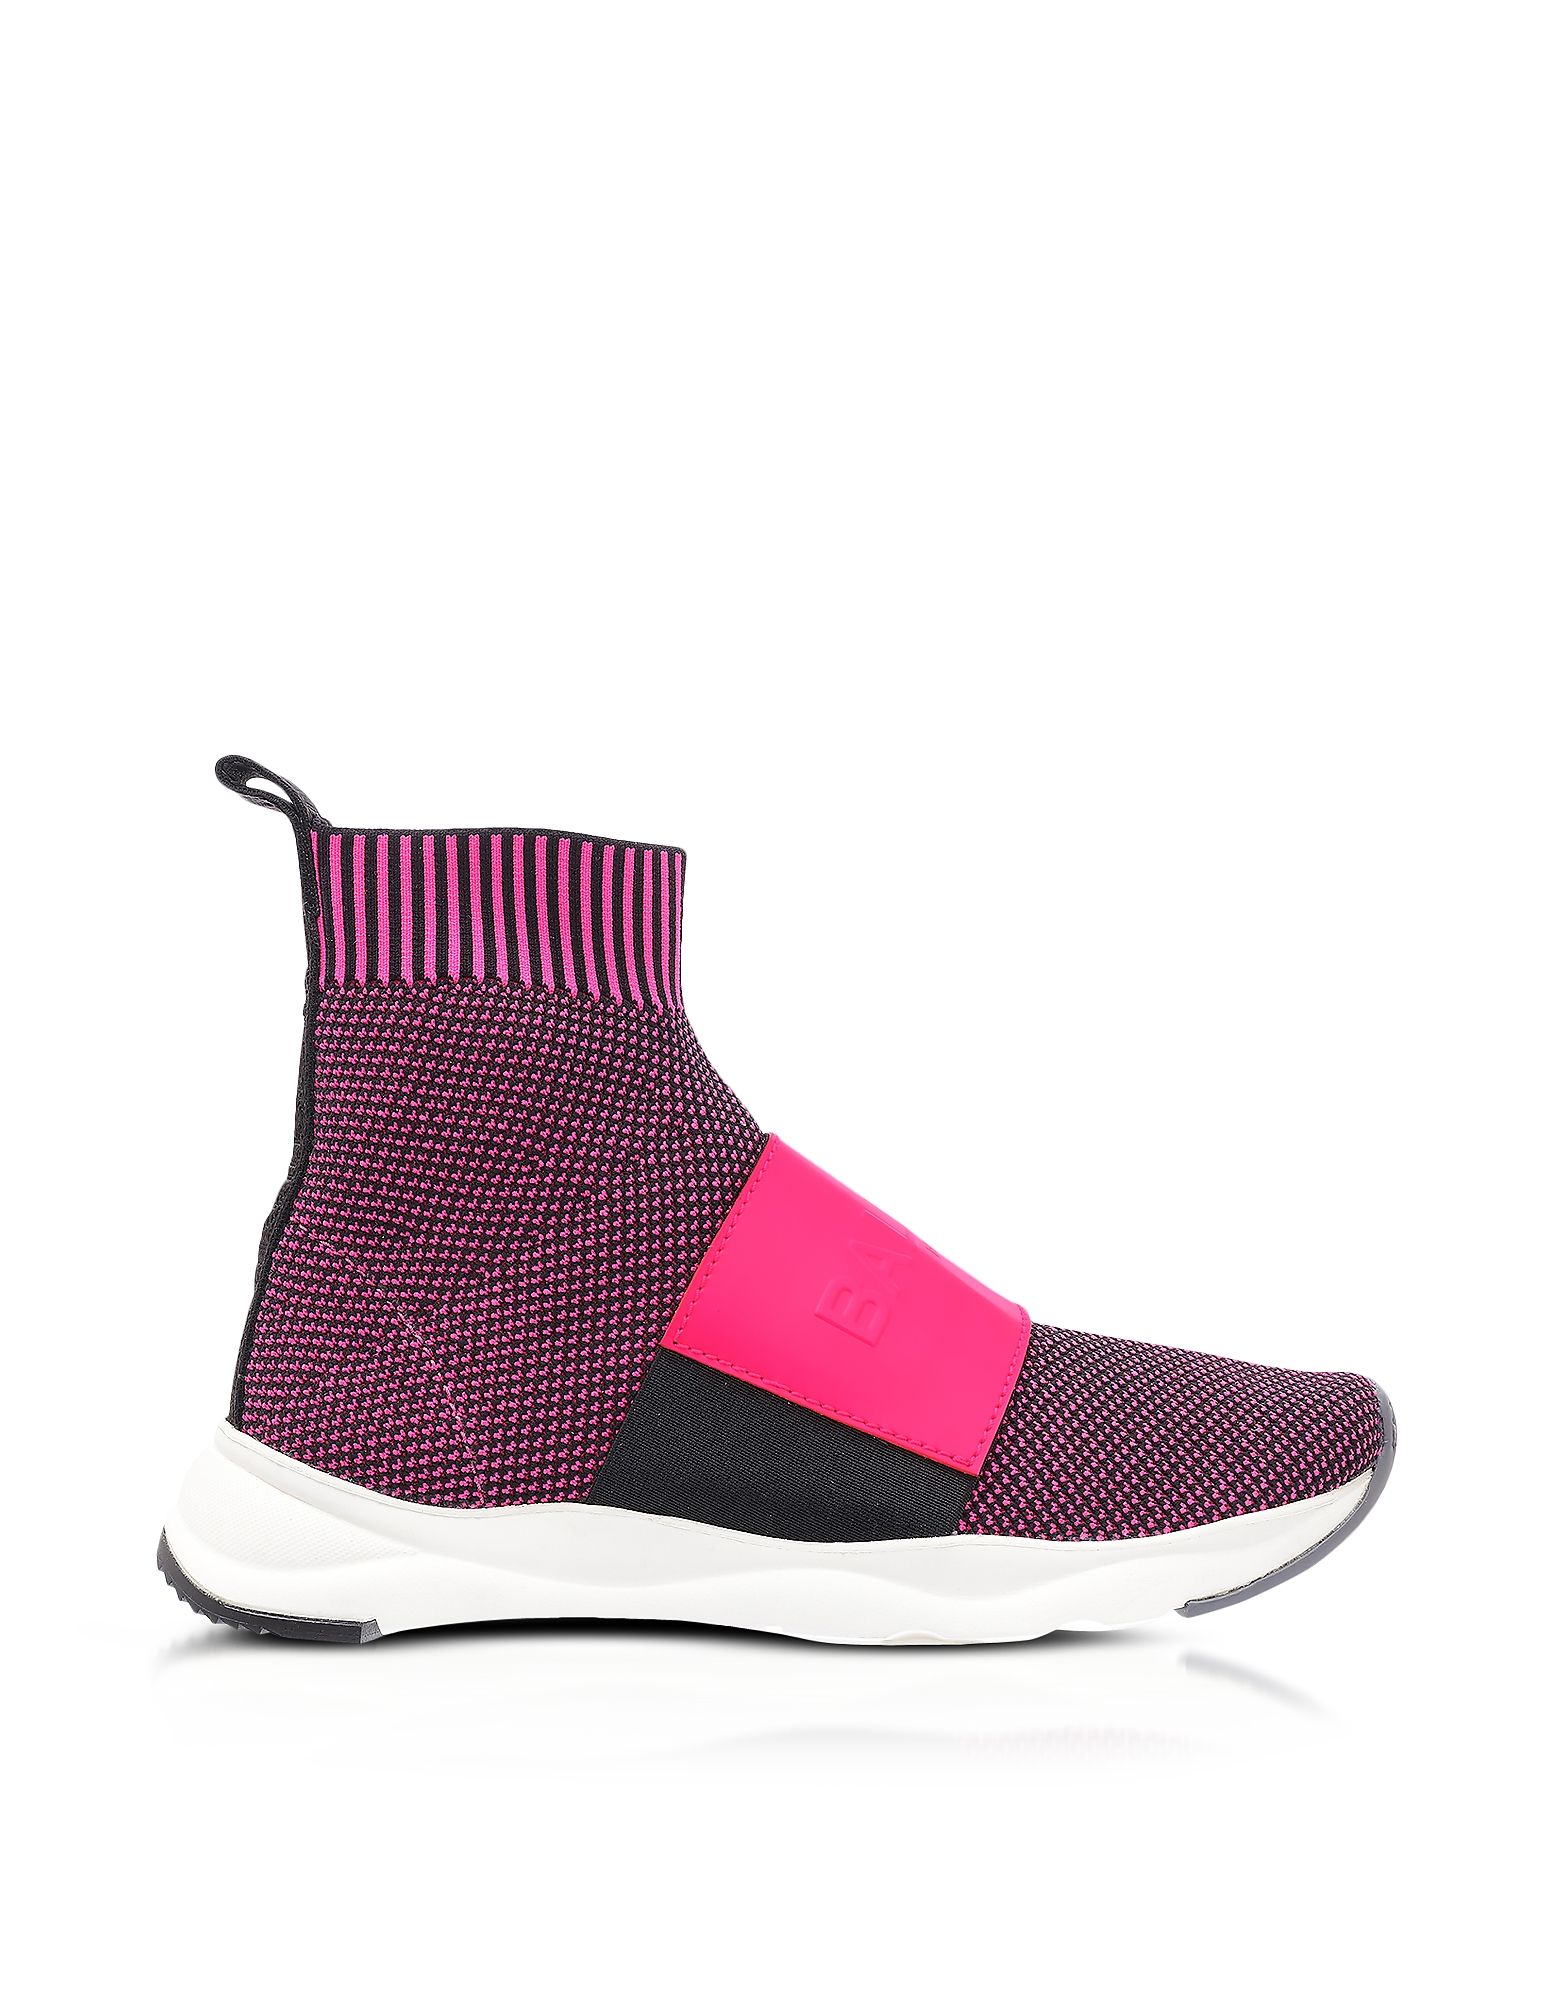 Balmain Shoes, Neon Fuchsia Knit Ribbon Fabric and Leather Cameron Running Women's Sneakers